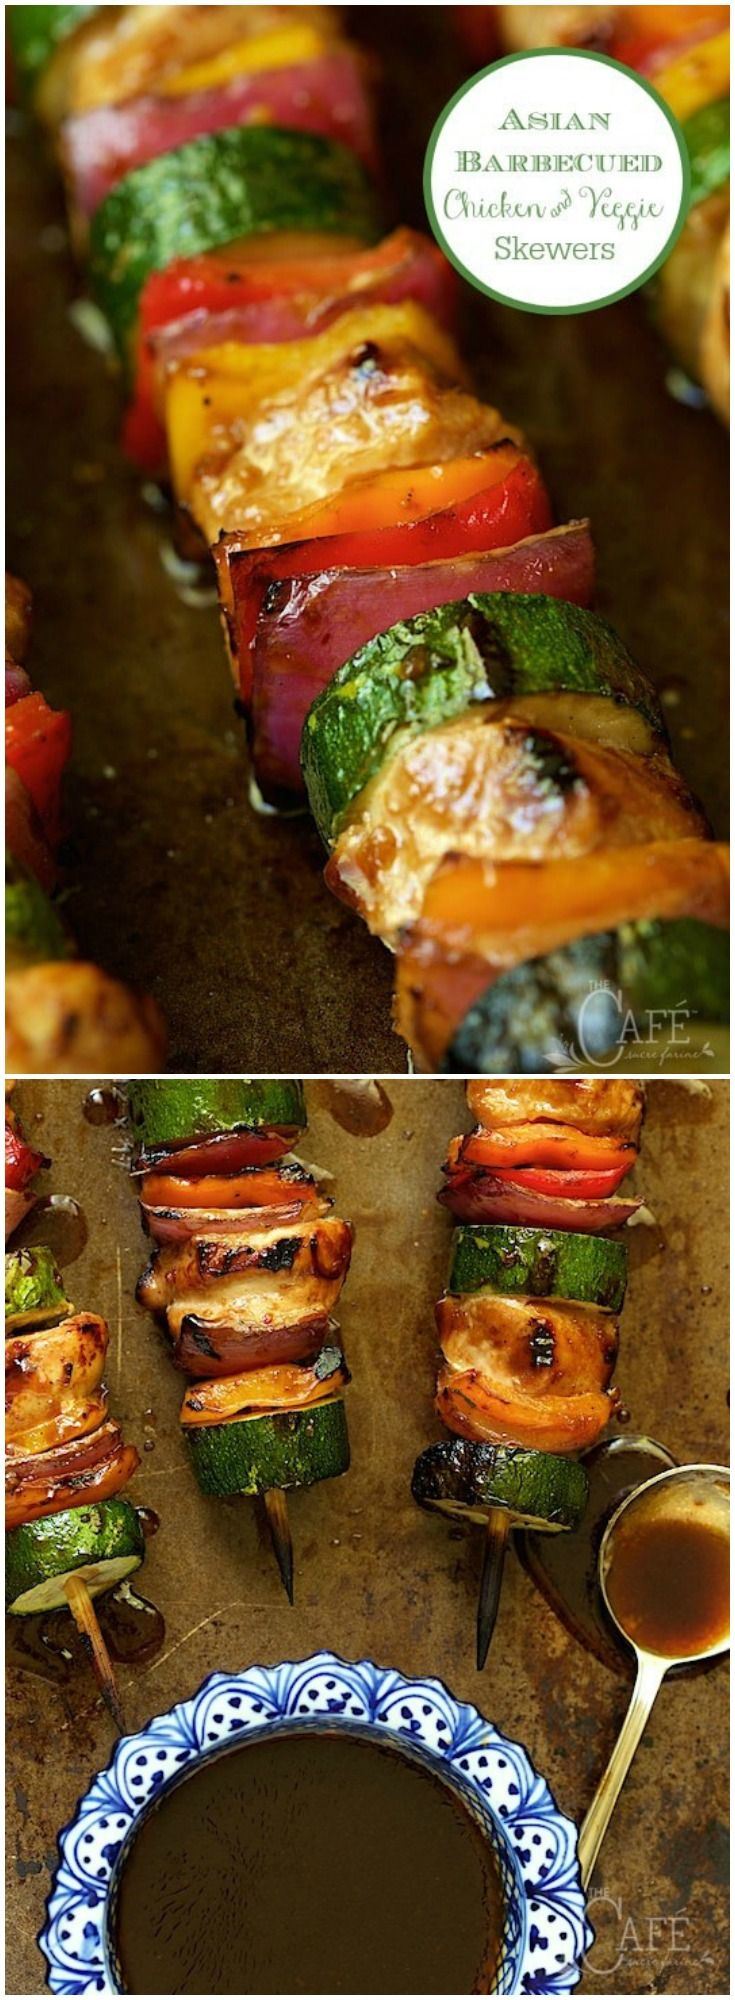 These fun, easy skewers are sweet and sticky, with a touch of heat.  via @cafesucrefarine